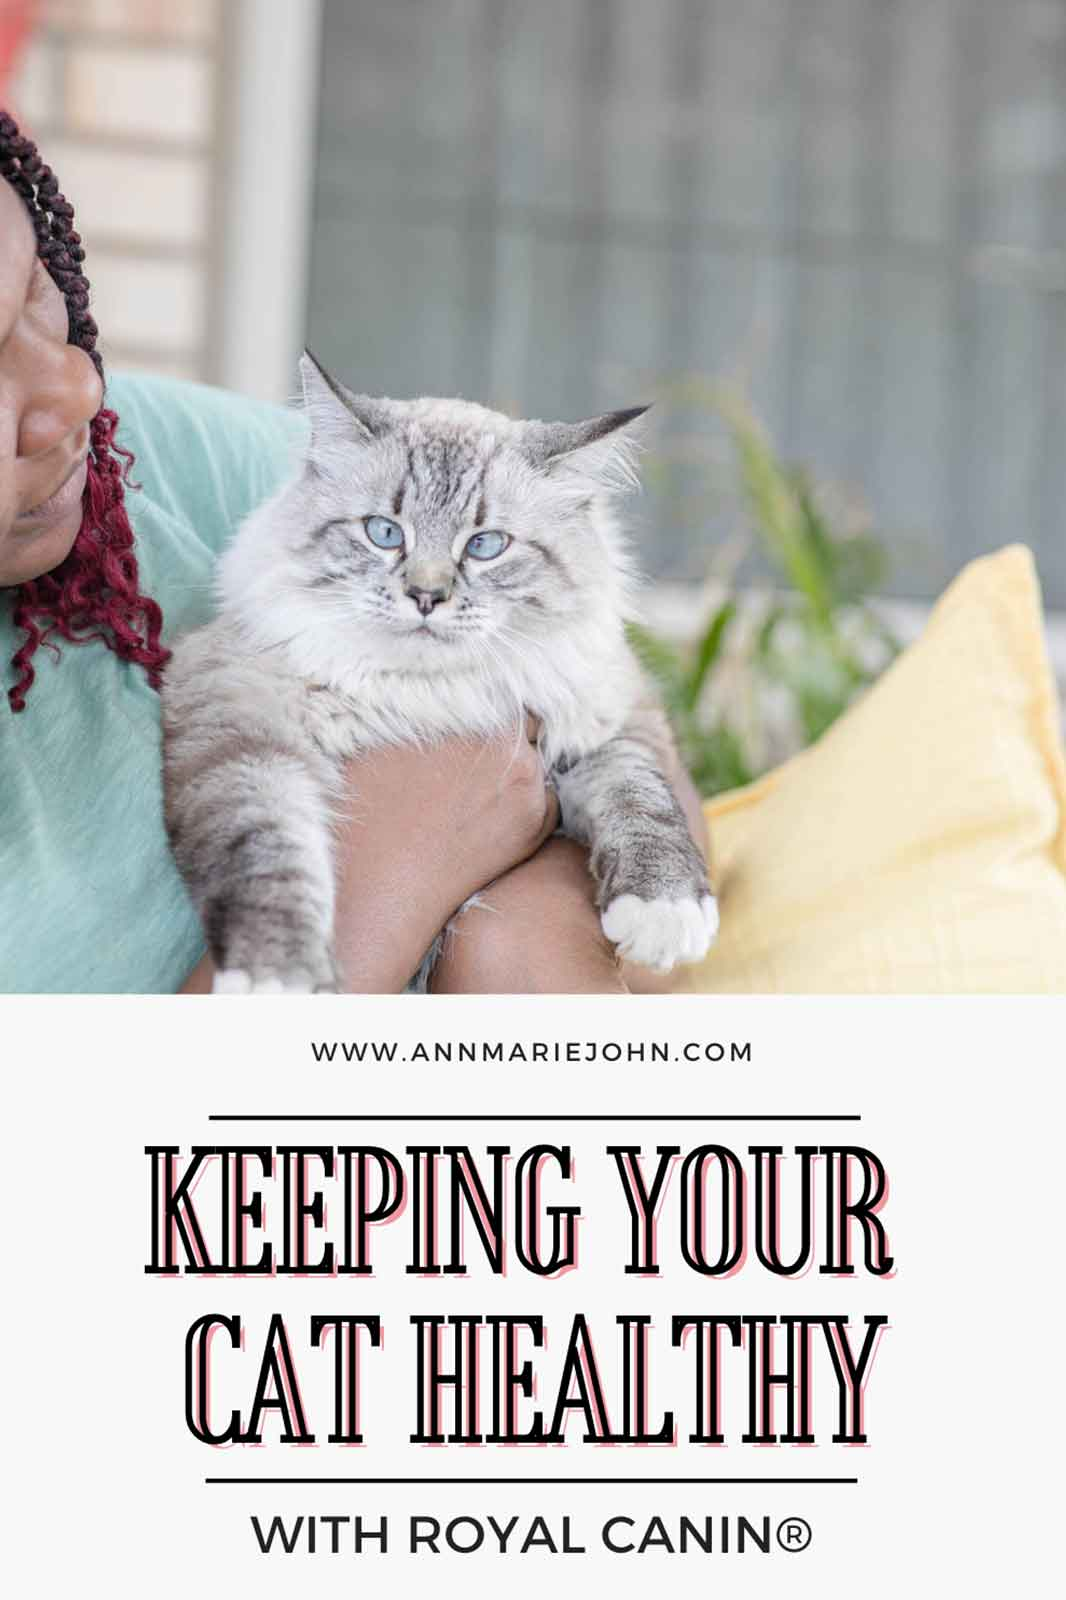 Keeping Your Cat Healthy During National Take Your Cat to the Vet Month.